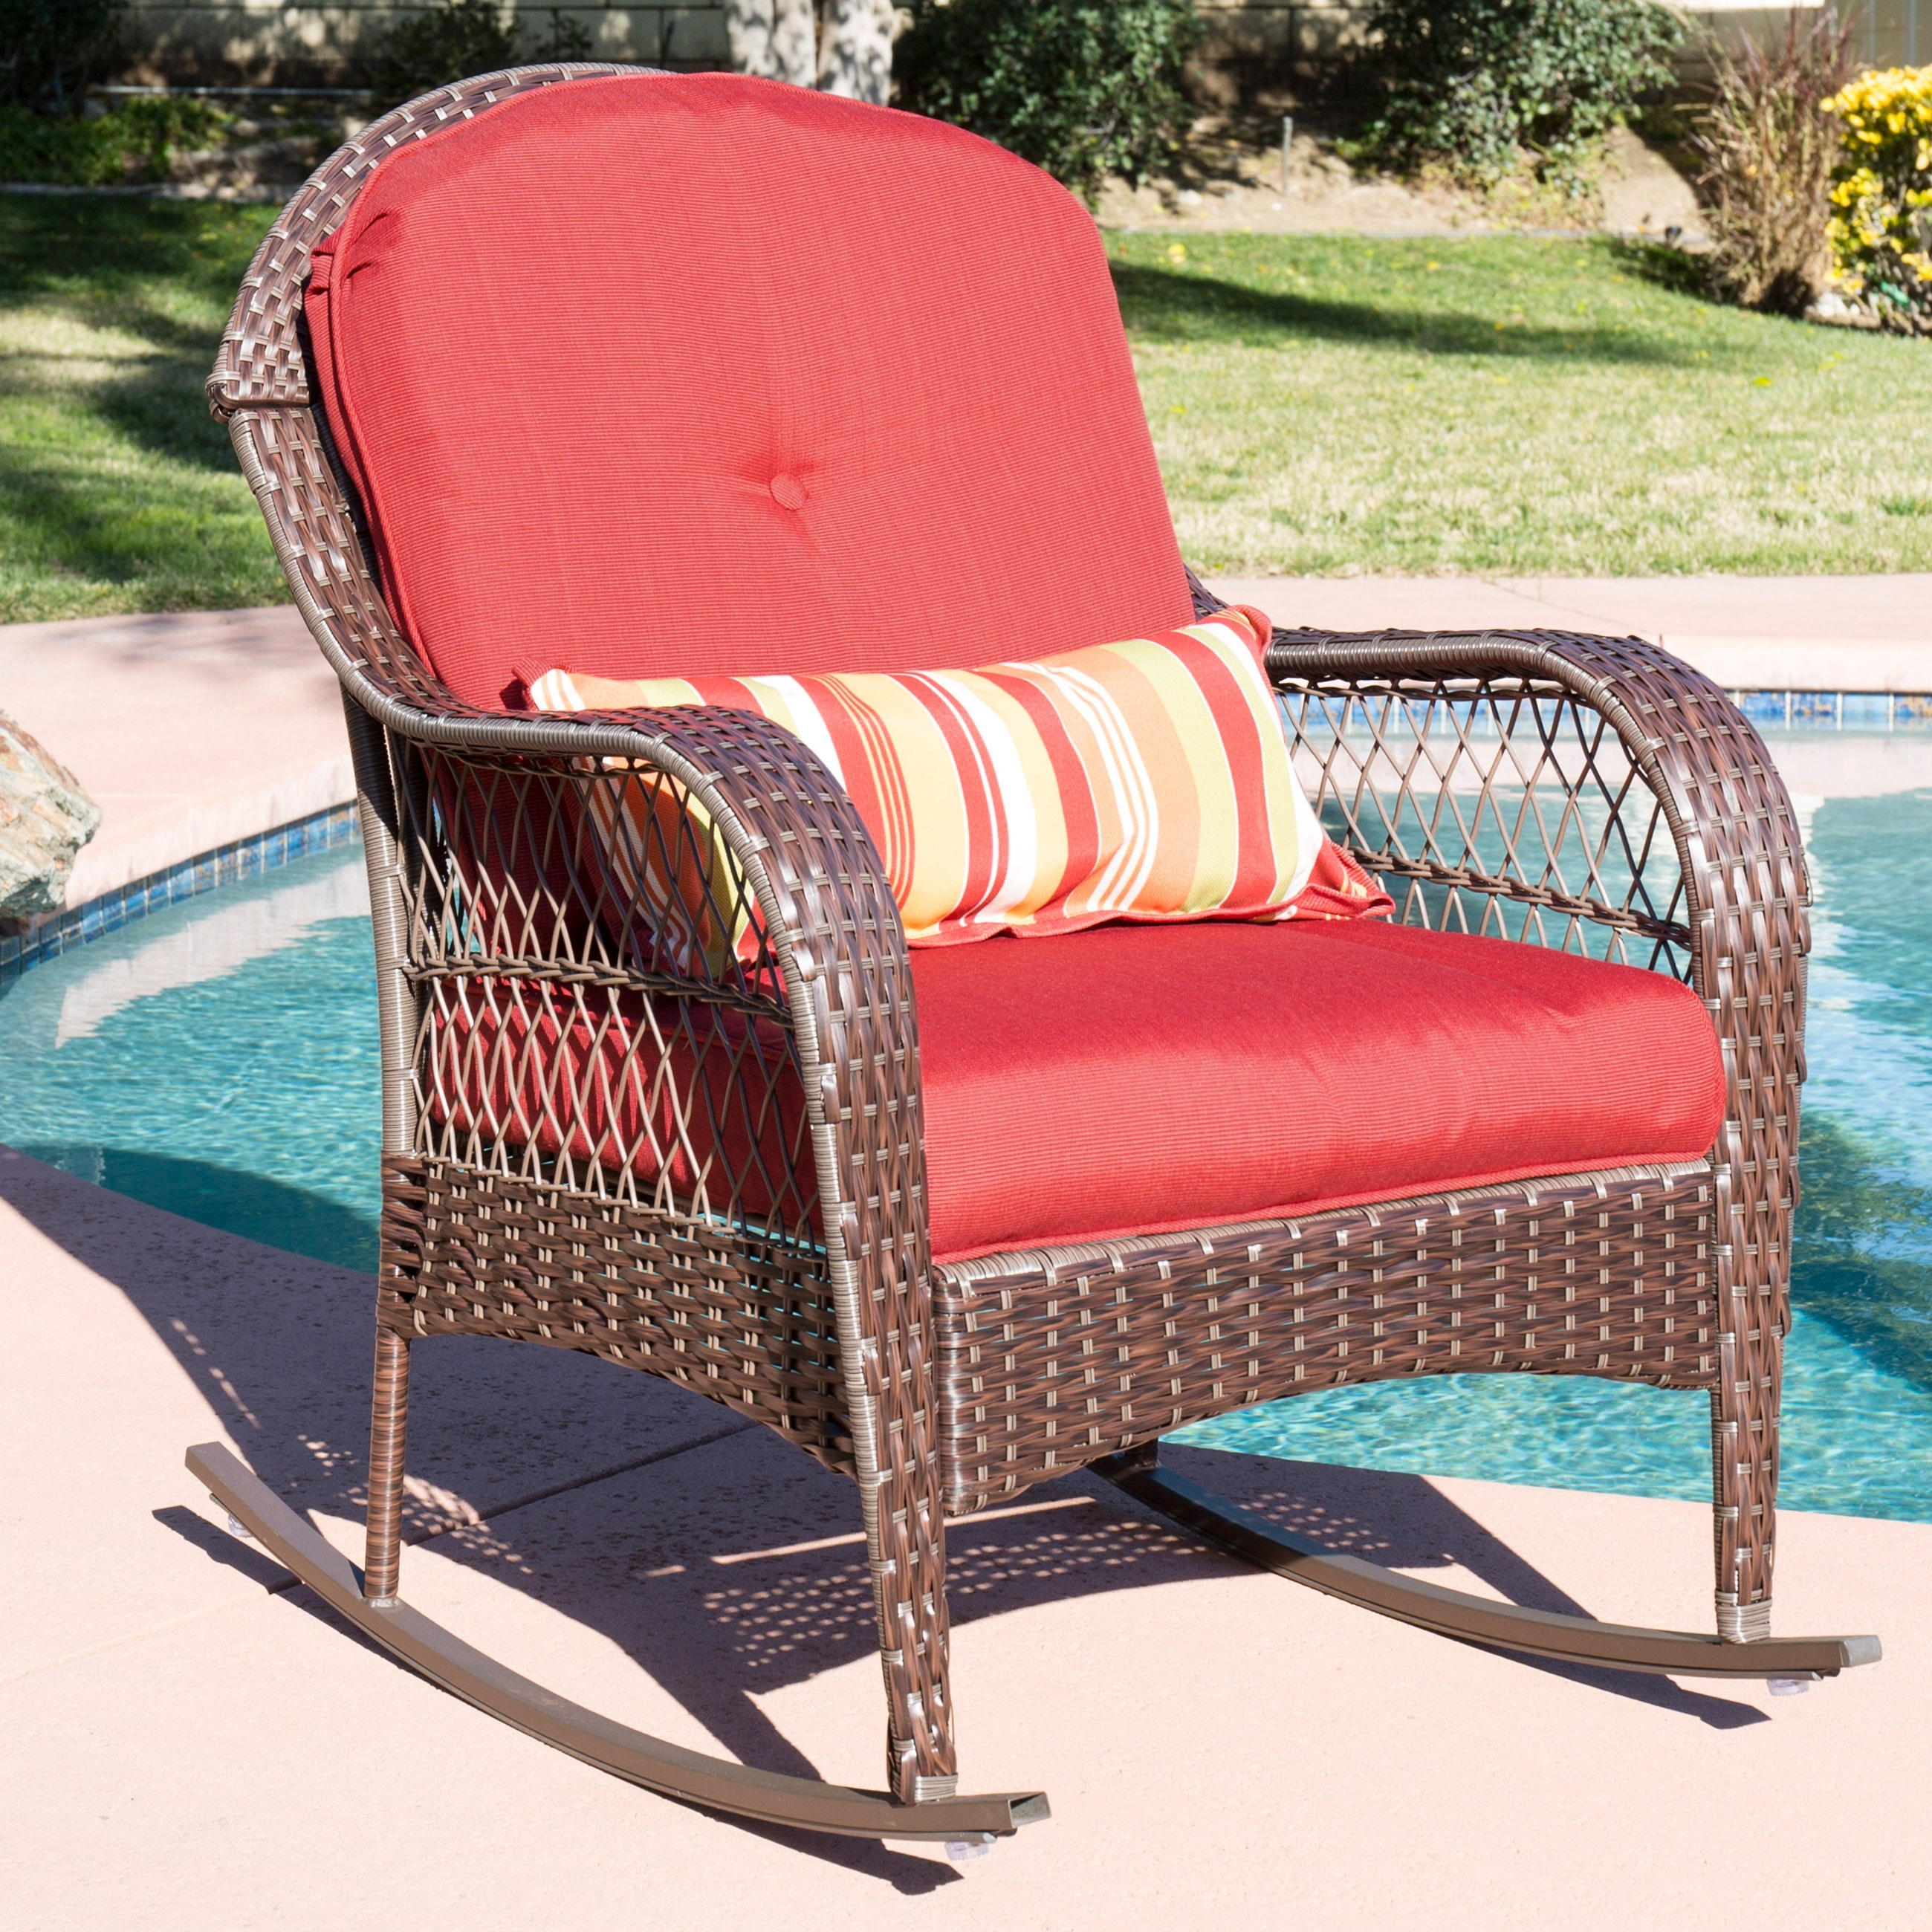 Best Choice Products Wicker Rocking Chair Patio Porch Deck Furniture For Recent Wicker Rocking Chairs With Cushions (View 1 of 15)